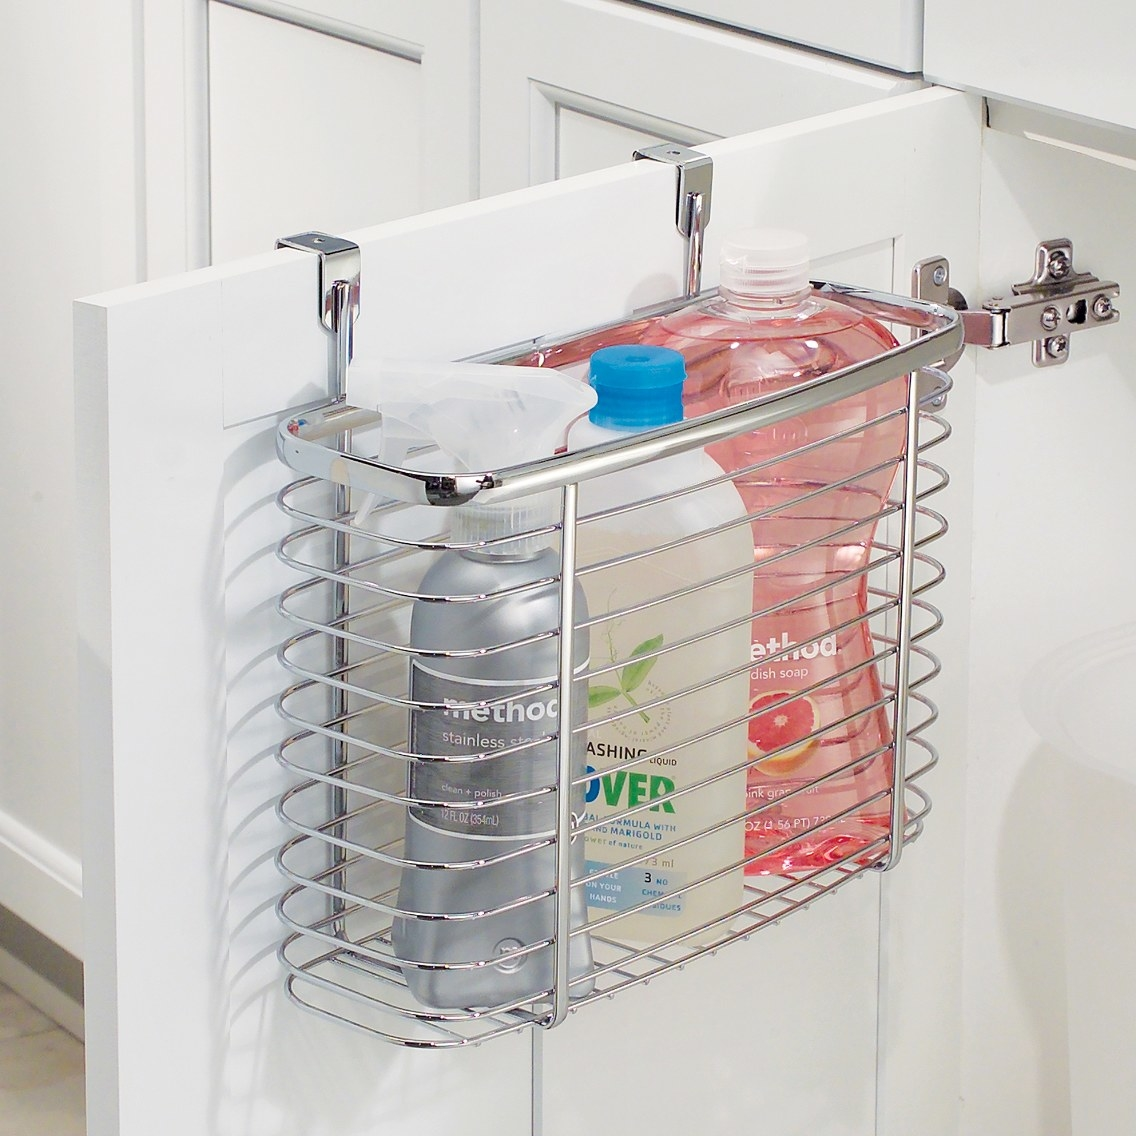 The over the door kitchen storage organizer in metal